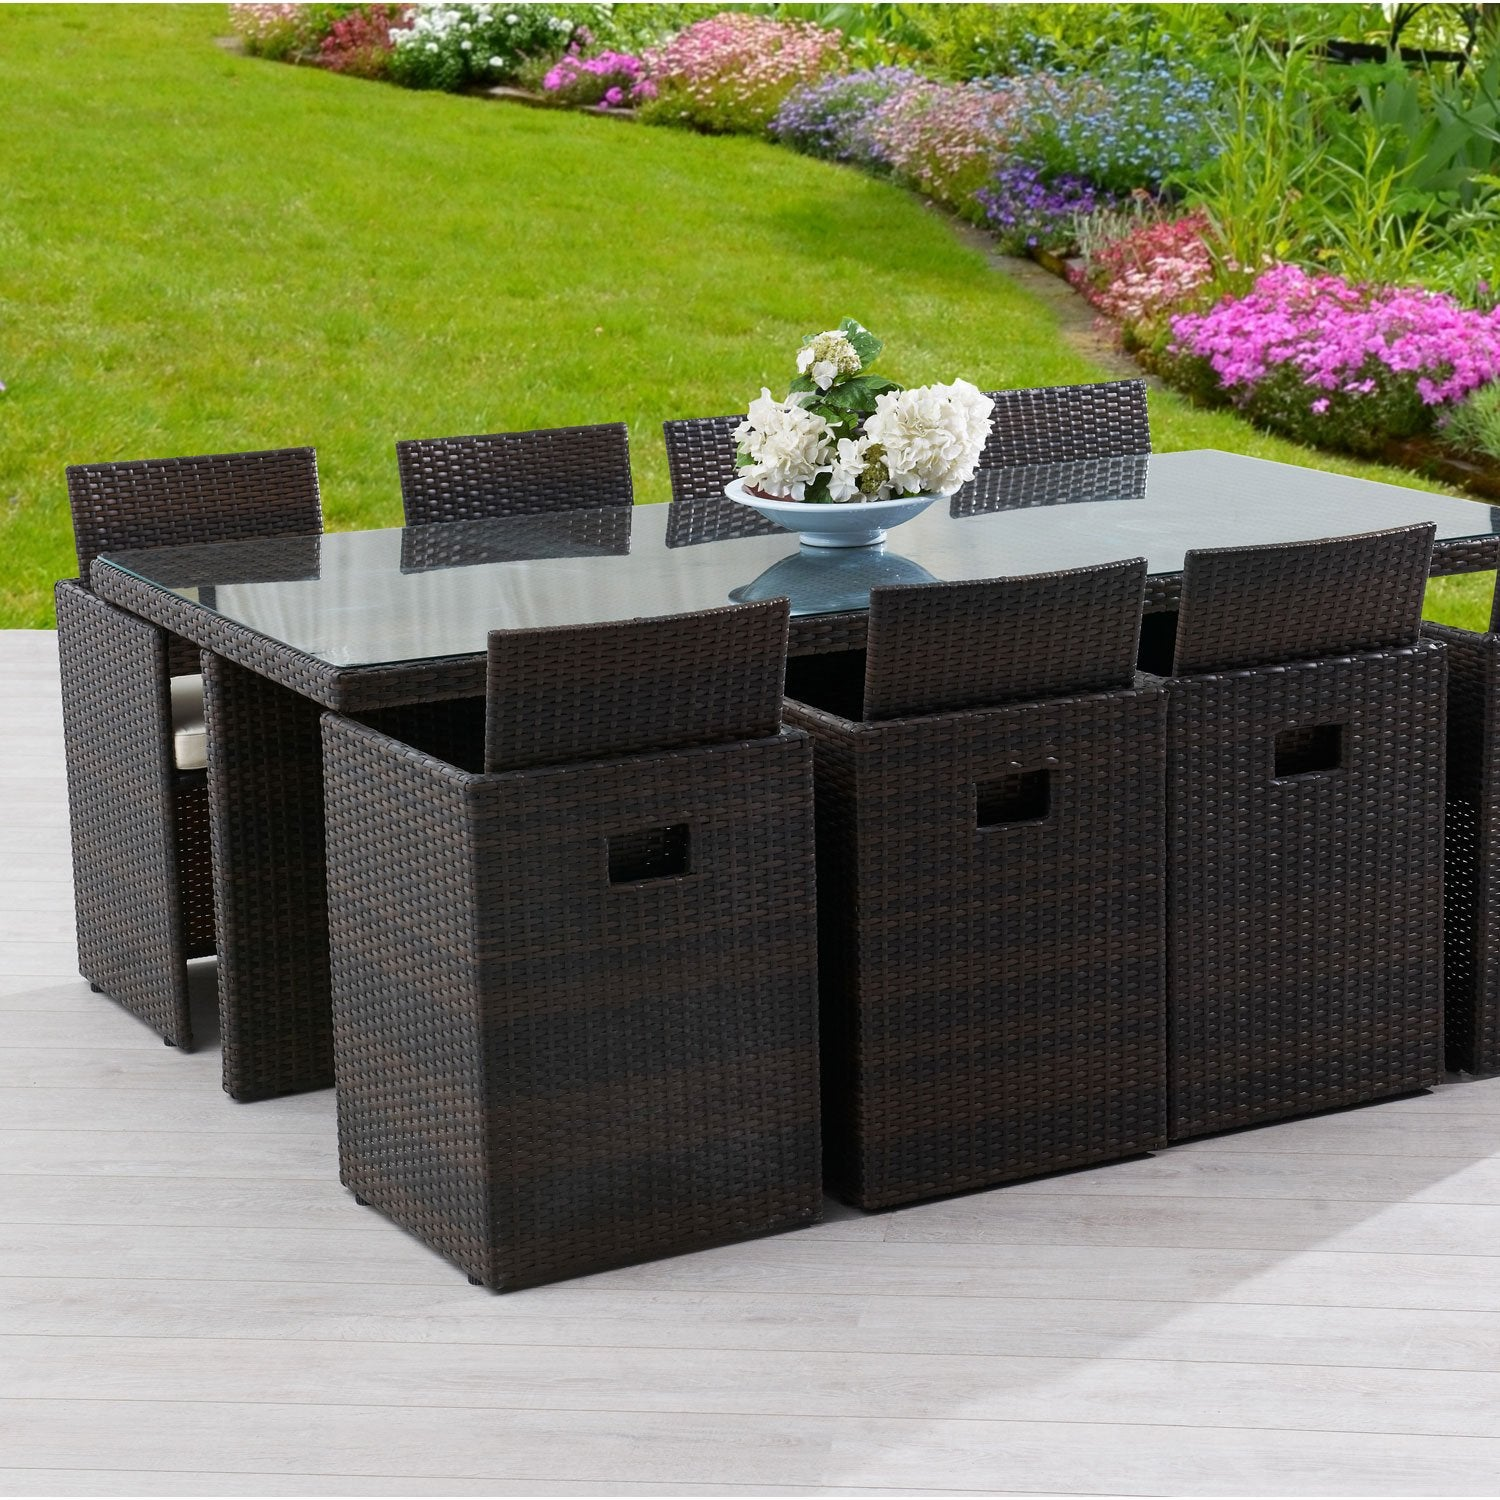 Salon de jardin encastrable r sine tress e marron 1 table - Meuble de jardin leroy merlin ...